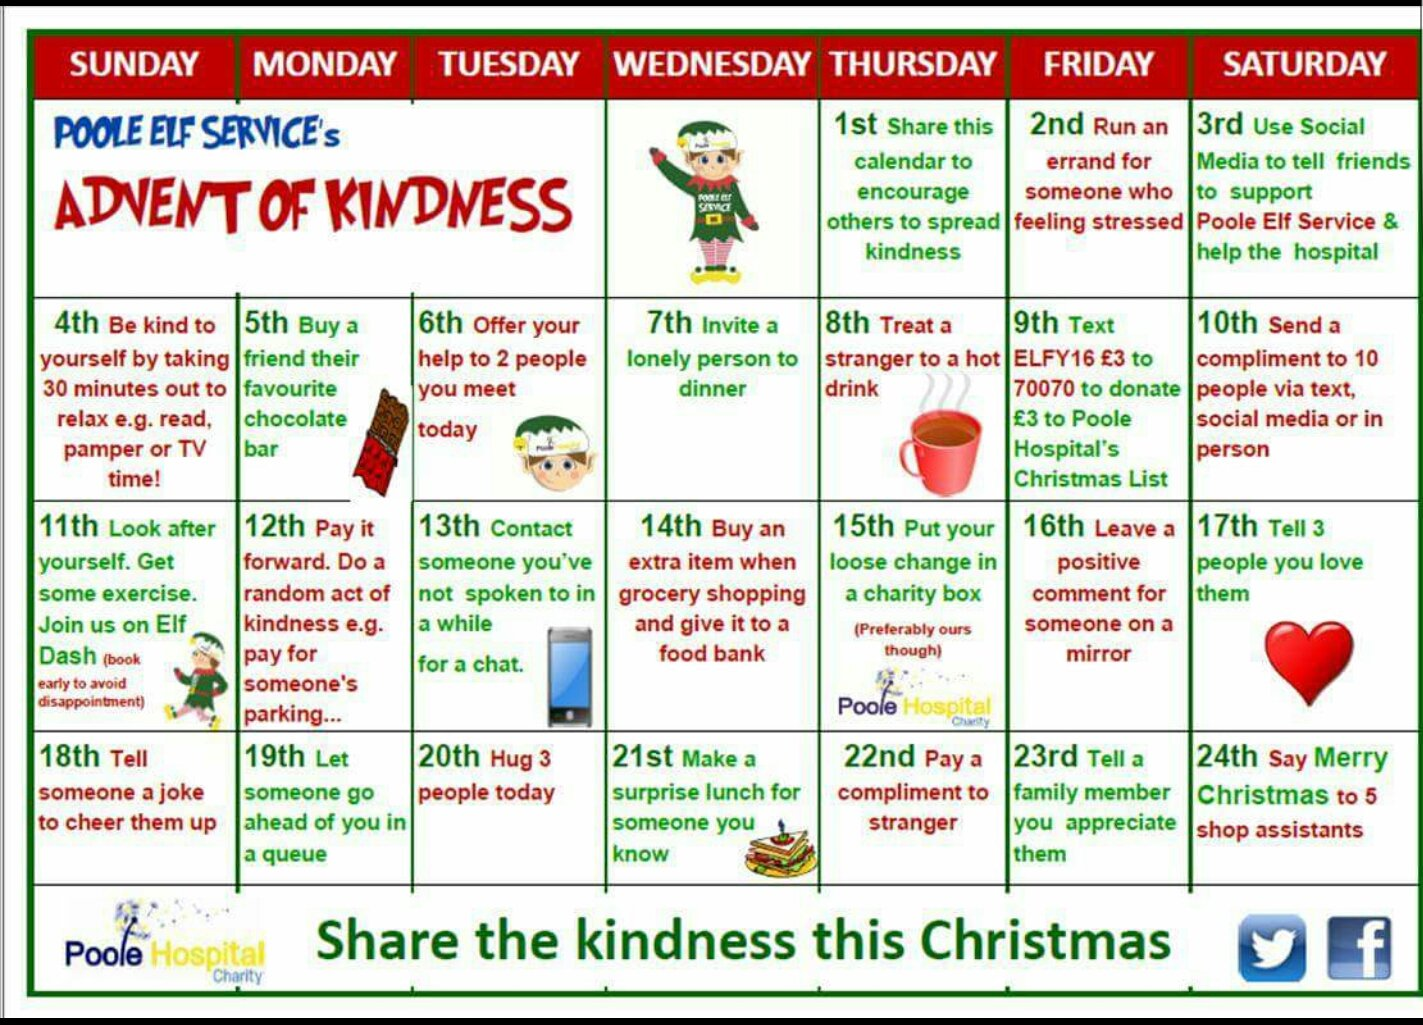 Spread some kindness just like our @Poole_Hospital team do. Advent of kindness.  #AdventCalendar  #PooleElfService #Dorset #poole https://t.co/6jmk9cPlq1